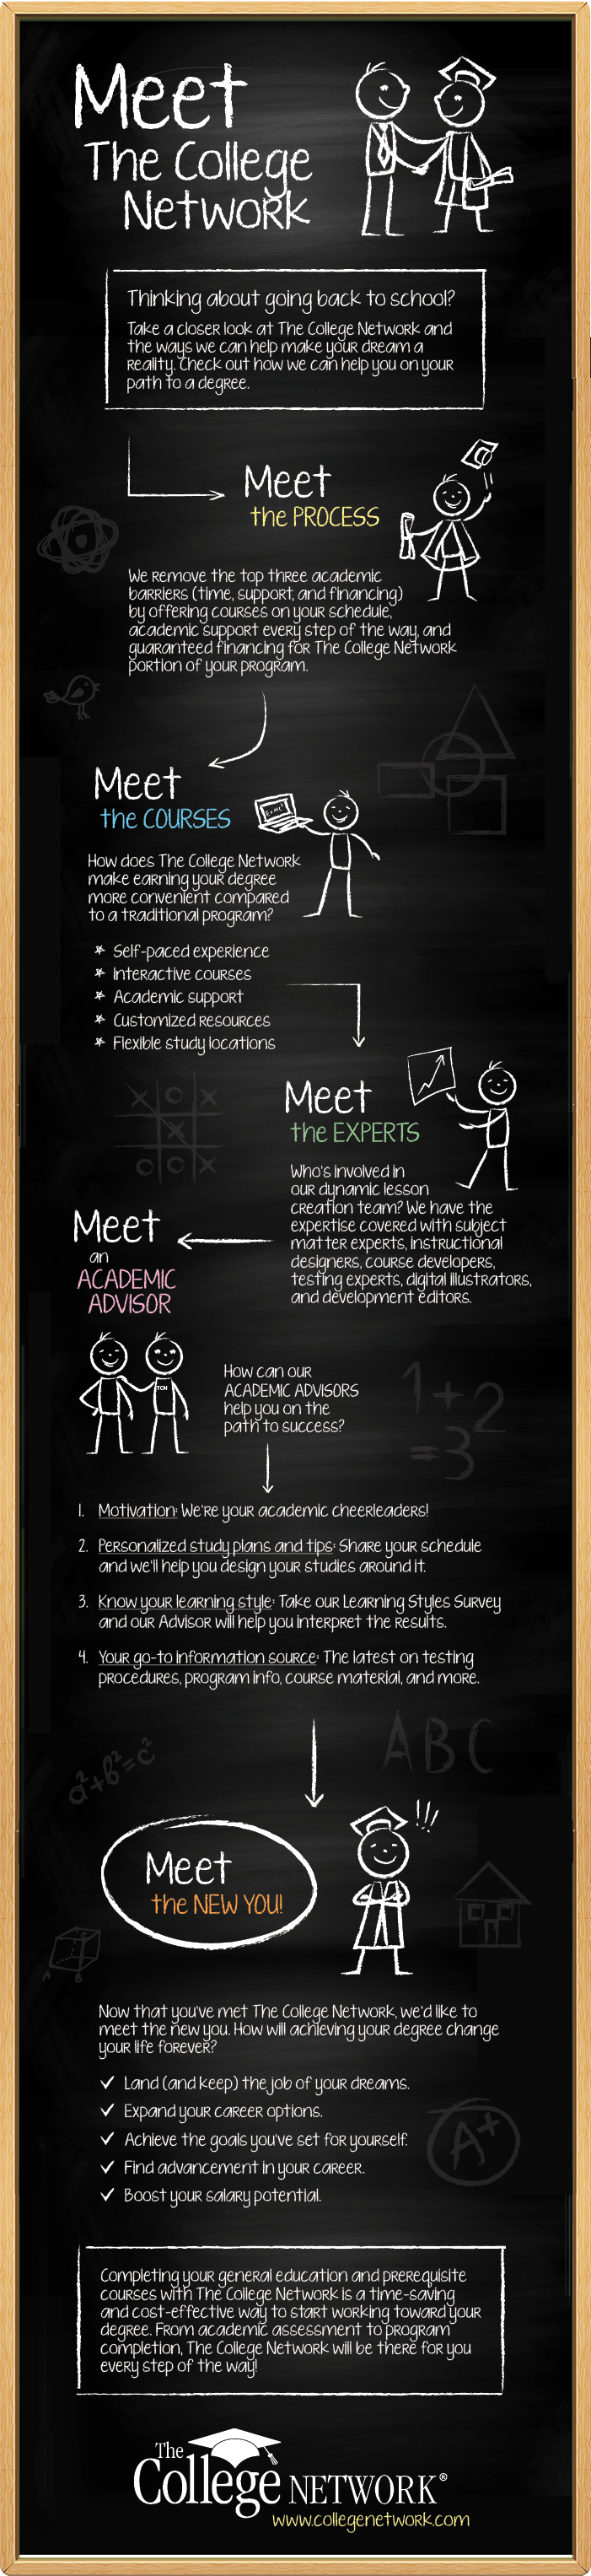 meet-the-college-network-infographic